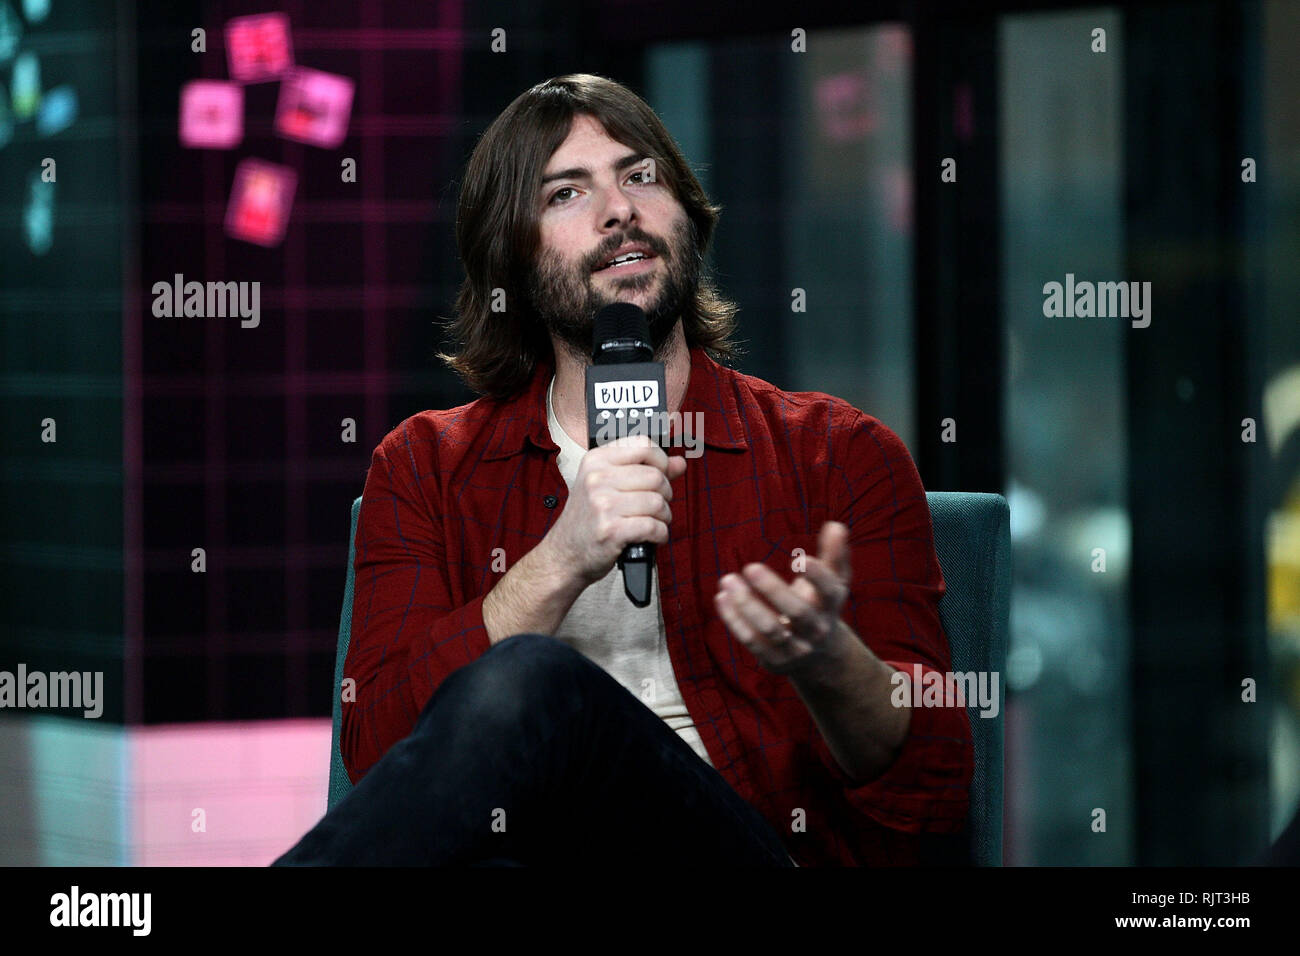 New York, USA. 07 Feb, 2019. Robert Schwartzman visits The Thursday, Feb 7, 2019 BUILD Series Inside Candids discussing 'The Unicorn' at BUILD Studio in New York, USA. Credit: Steve Mack/S.D. Mack Pictures/Alamy Live News - Stock Image